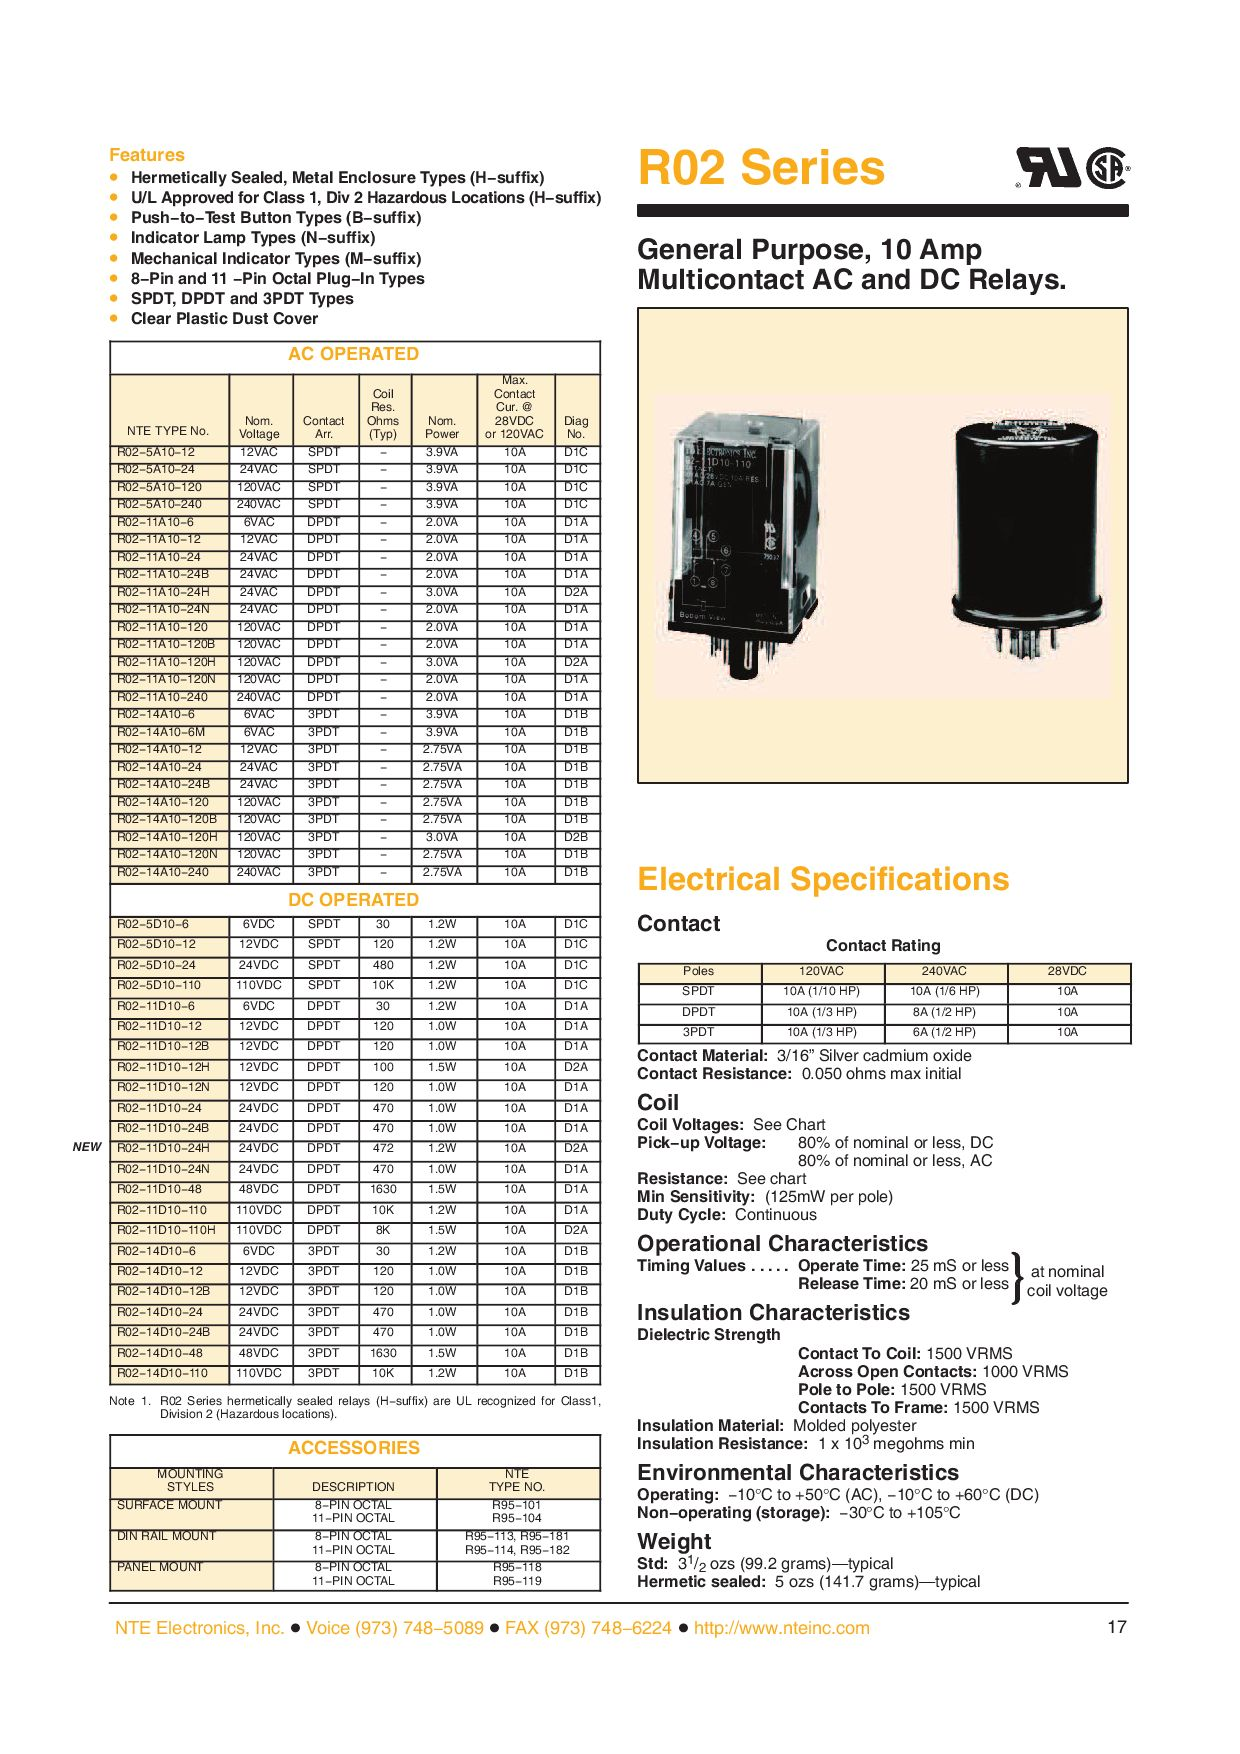 NTE Electronics R12-17D3-12 Series R12 General Purpose DC Relay